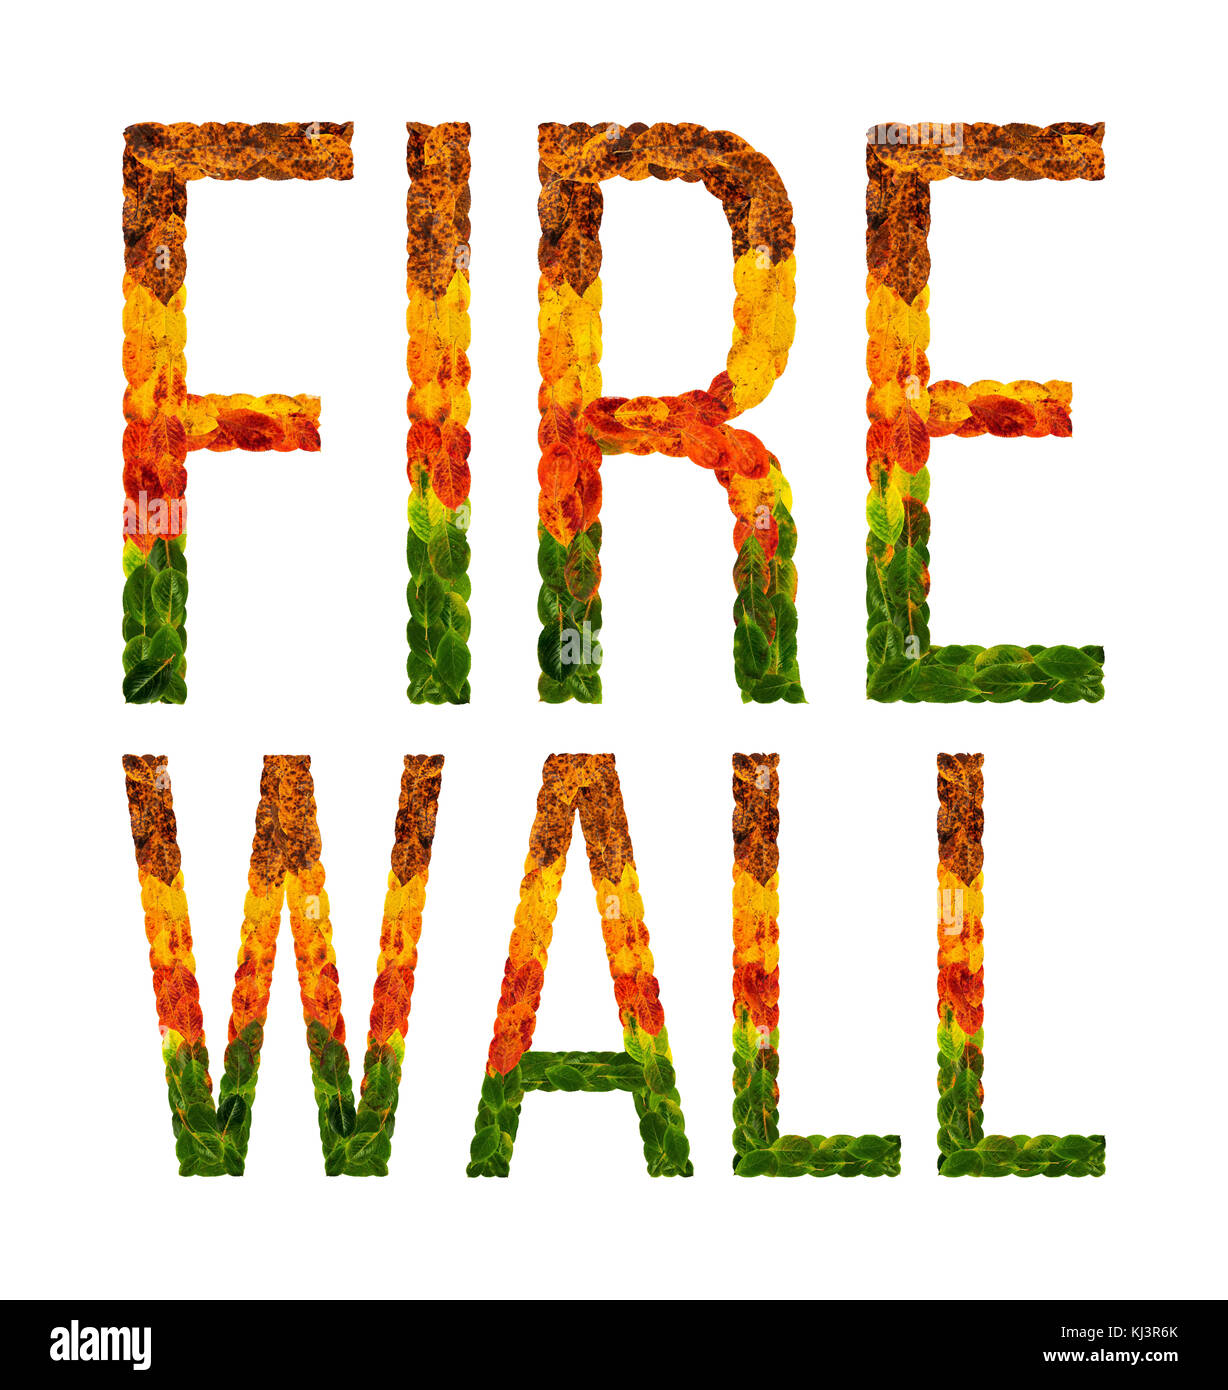 Word Fire Wall Written With Leaves White Isolated Background Banner For Printing Creative Illustration Of Colored